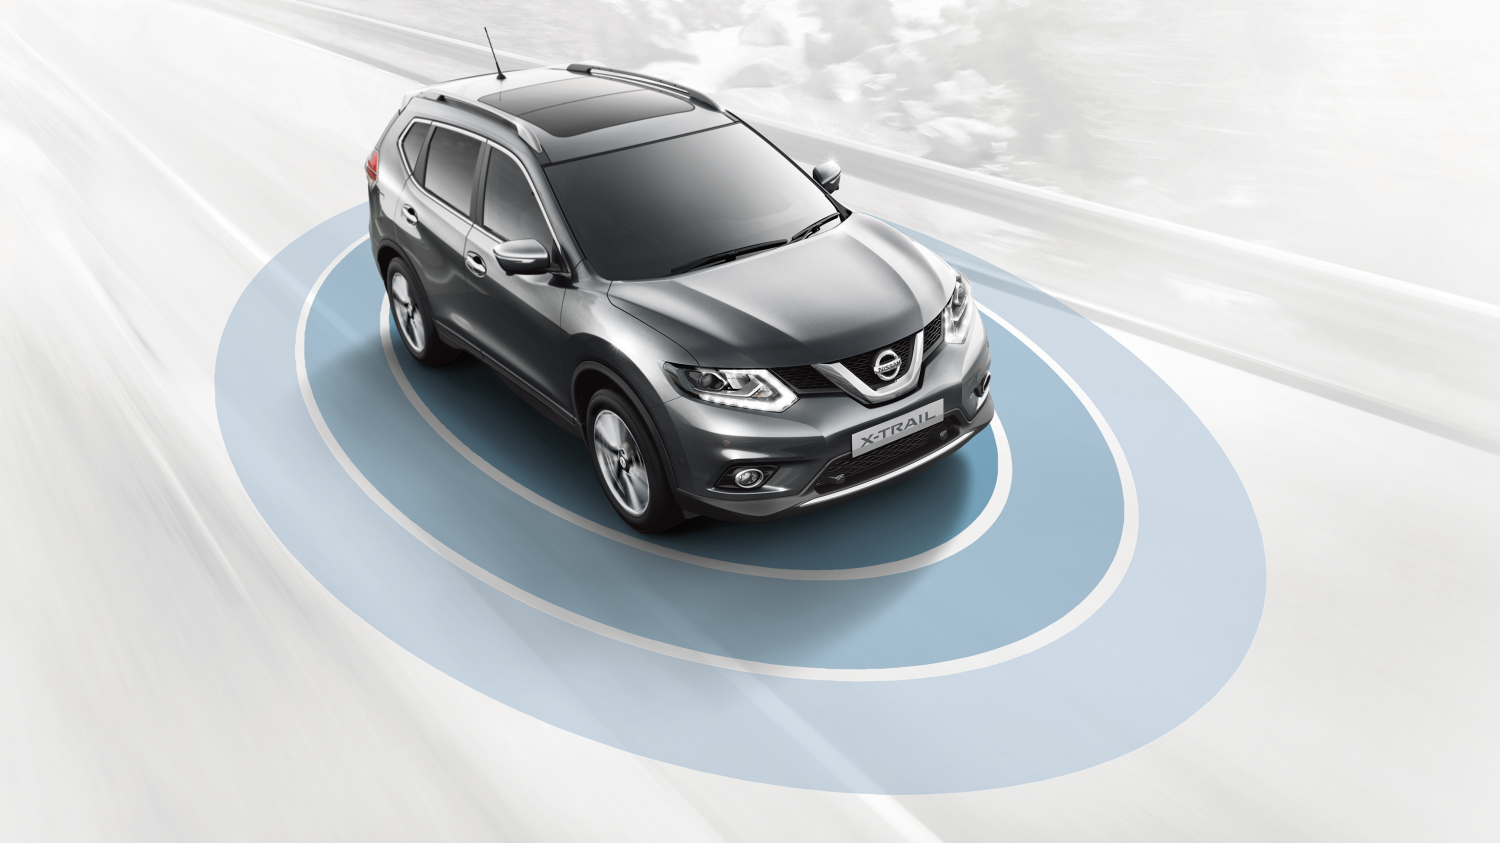 Nissan X-Trail - Safety shield system